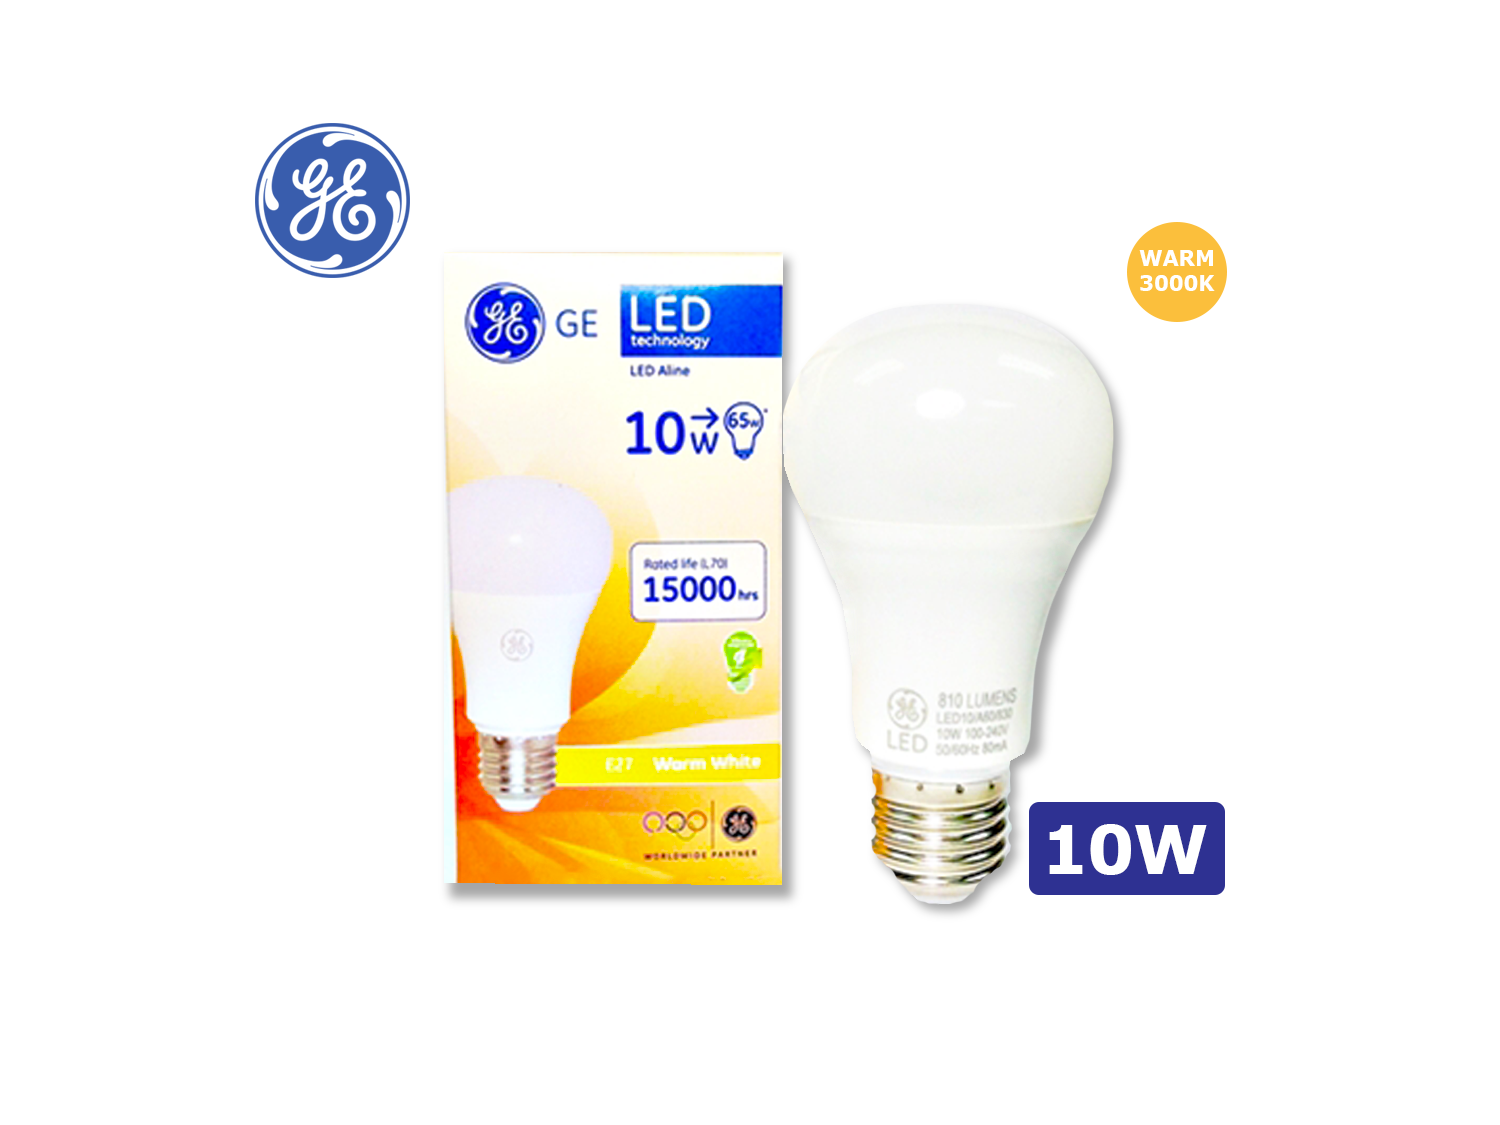 GE LED A60/10W/E27/3000K(Warm White)/100-240V ; SKU : 62164BT, LED10/A60/830/100-240V/E27